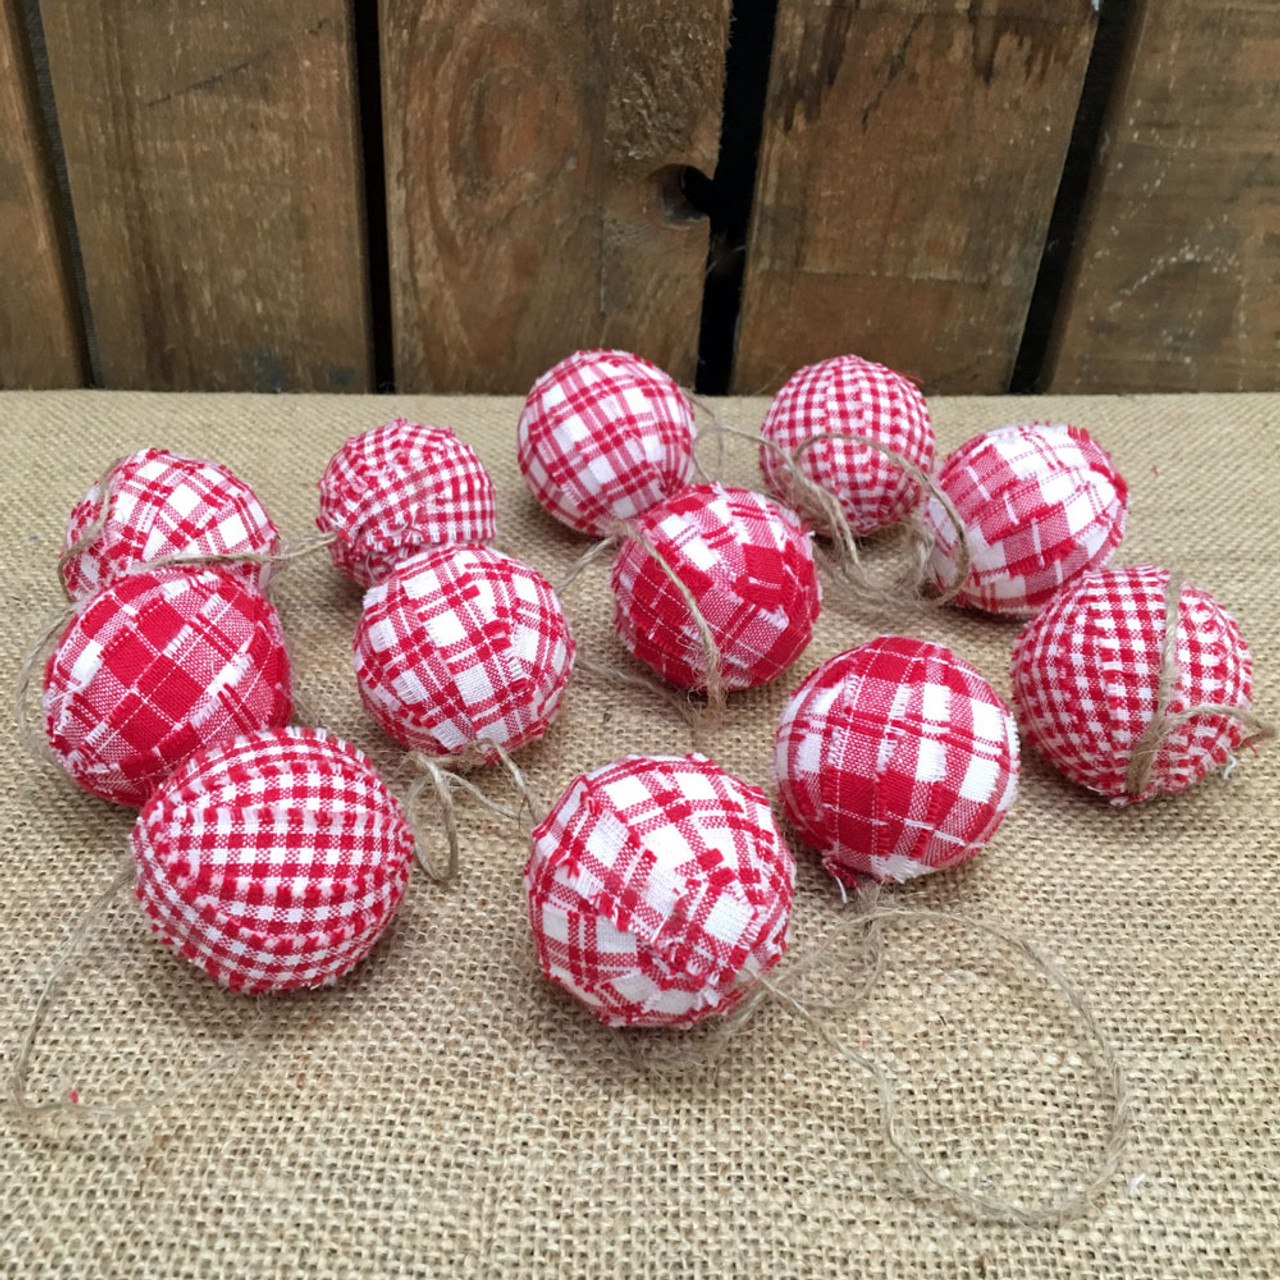 Cherry Red & White Plaid Homespun Christmas Ball Ornaments Set of 12